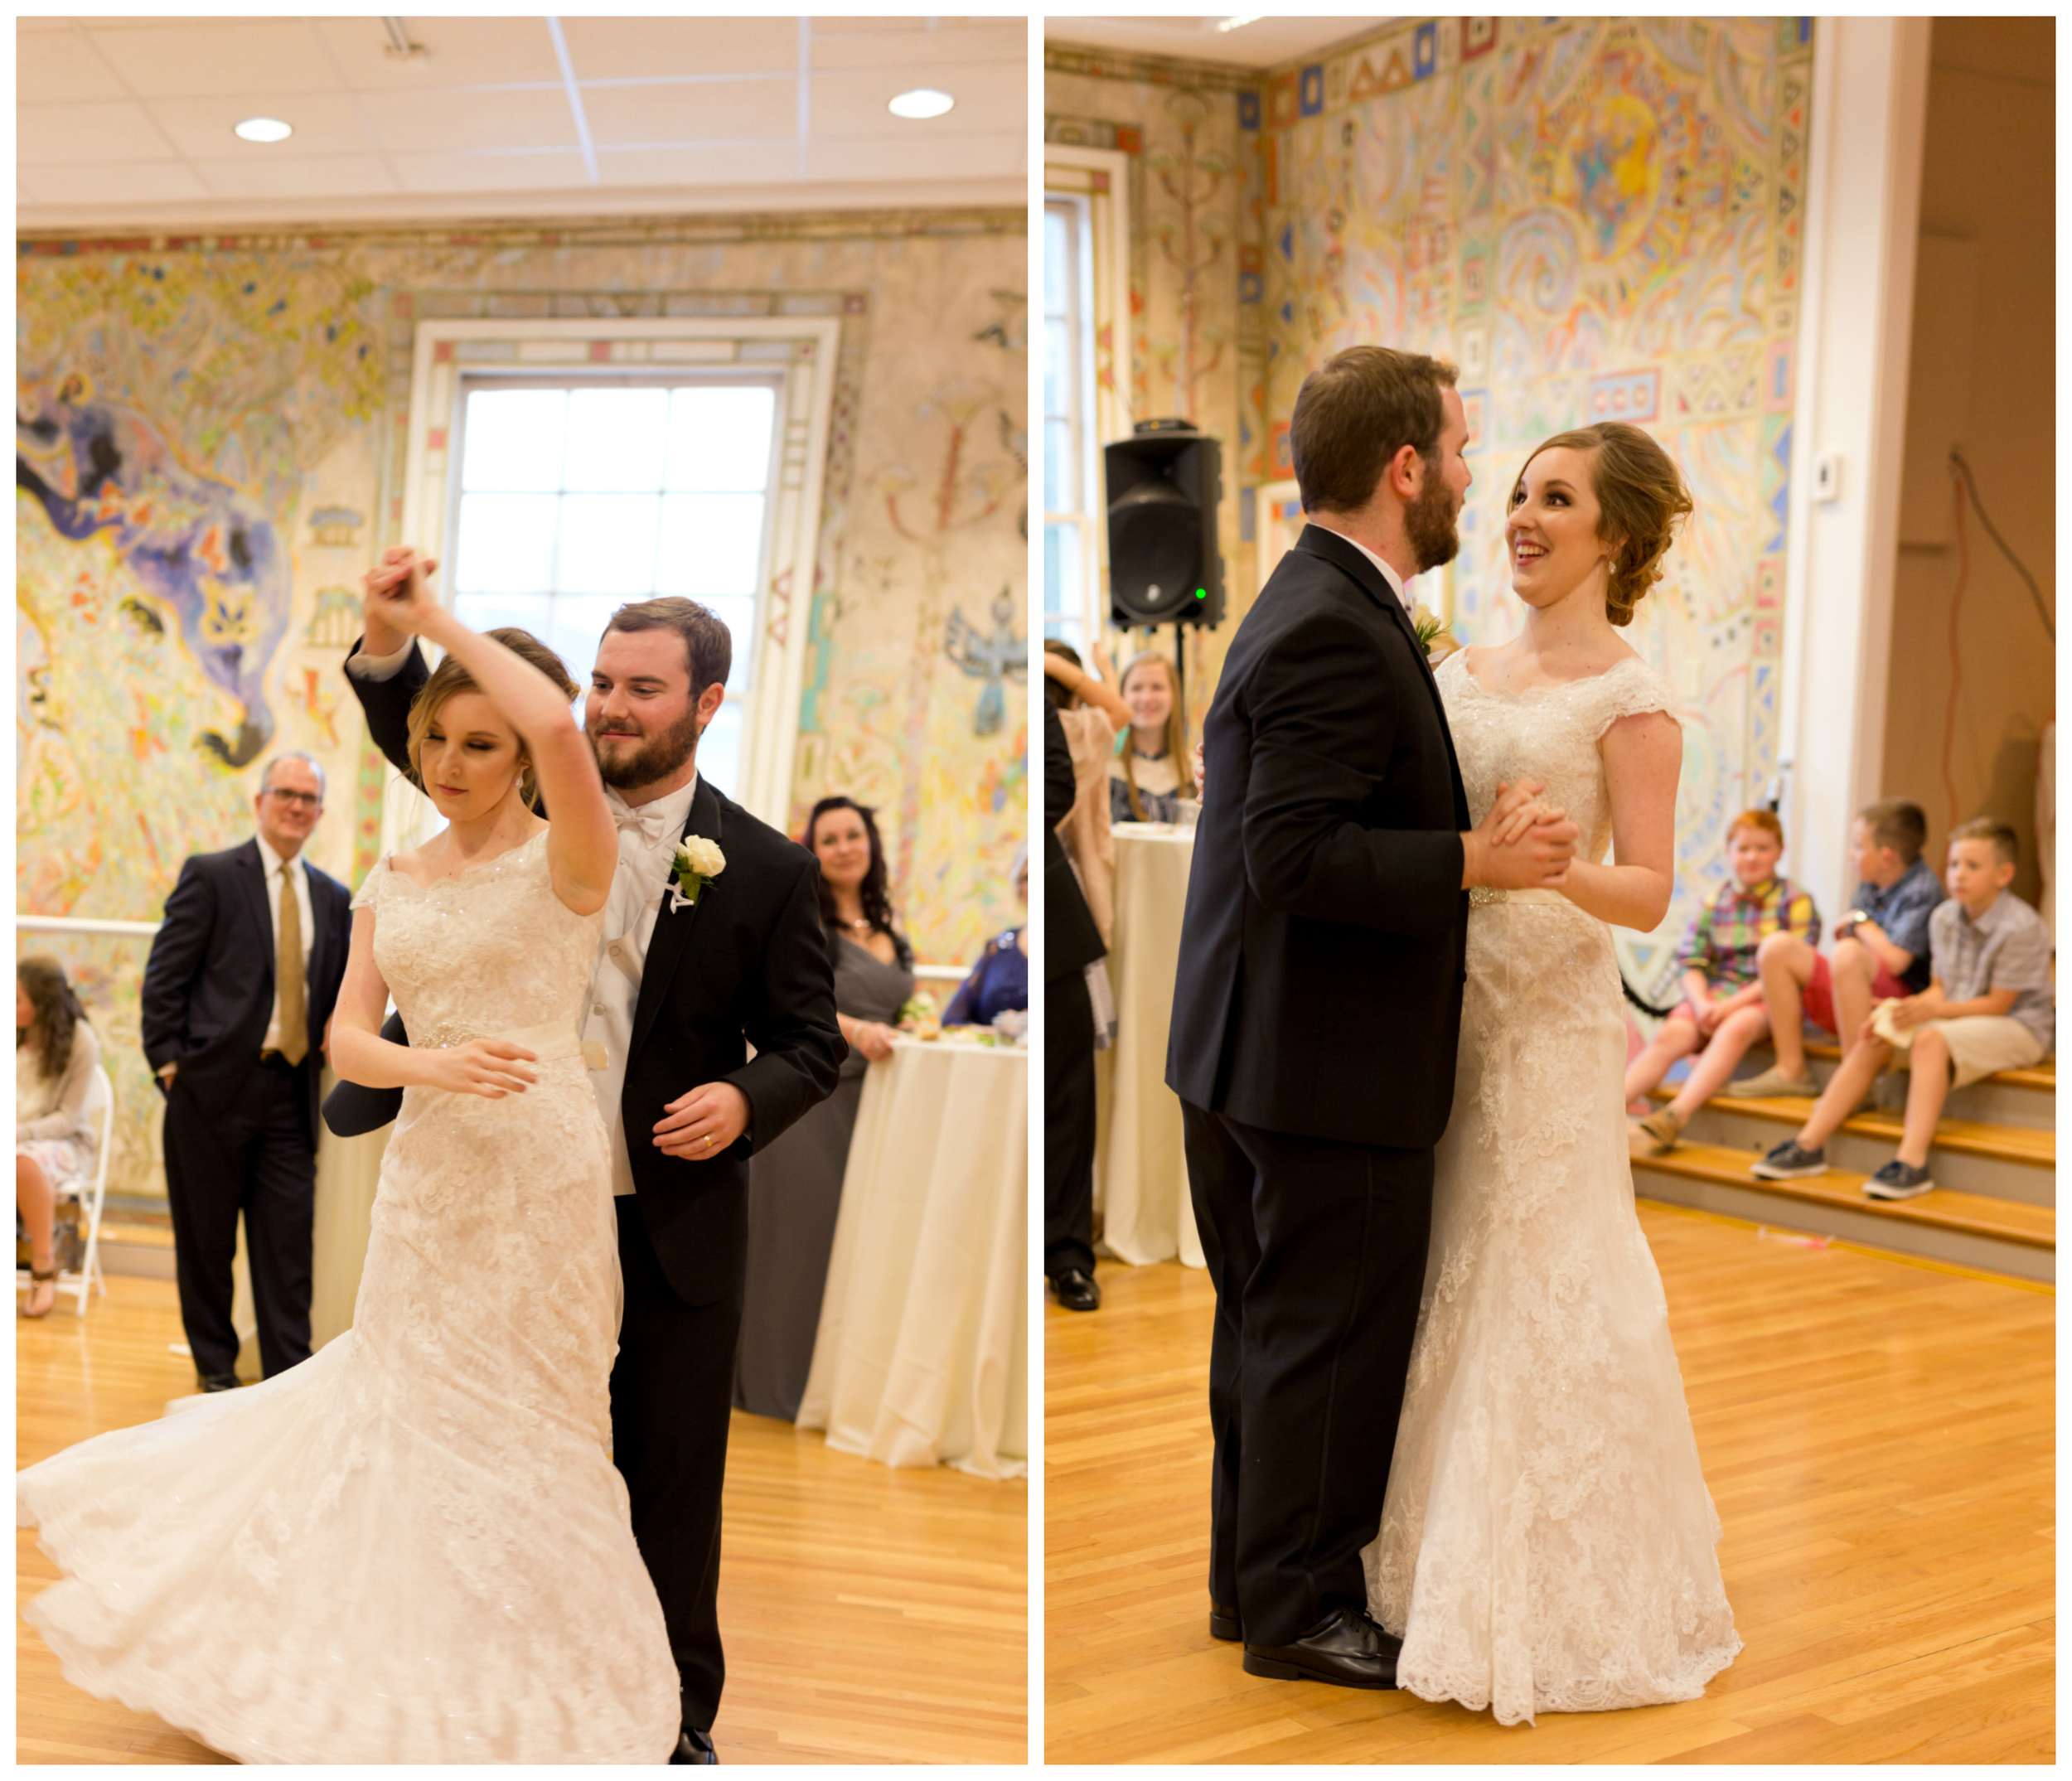 couple's first dance at wedding